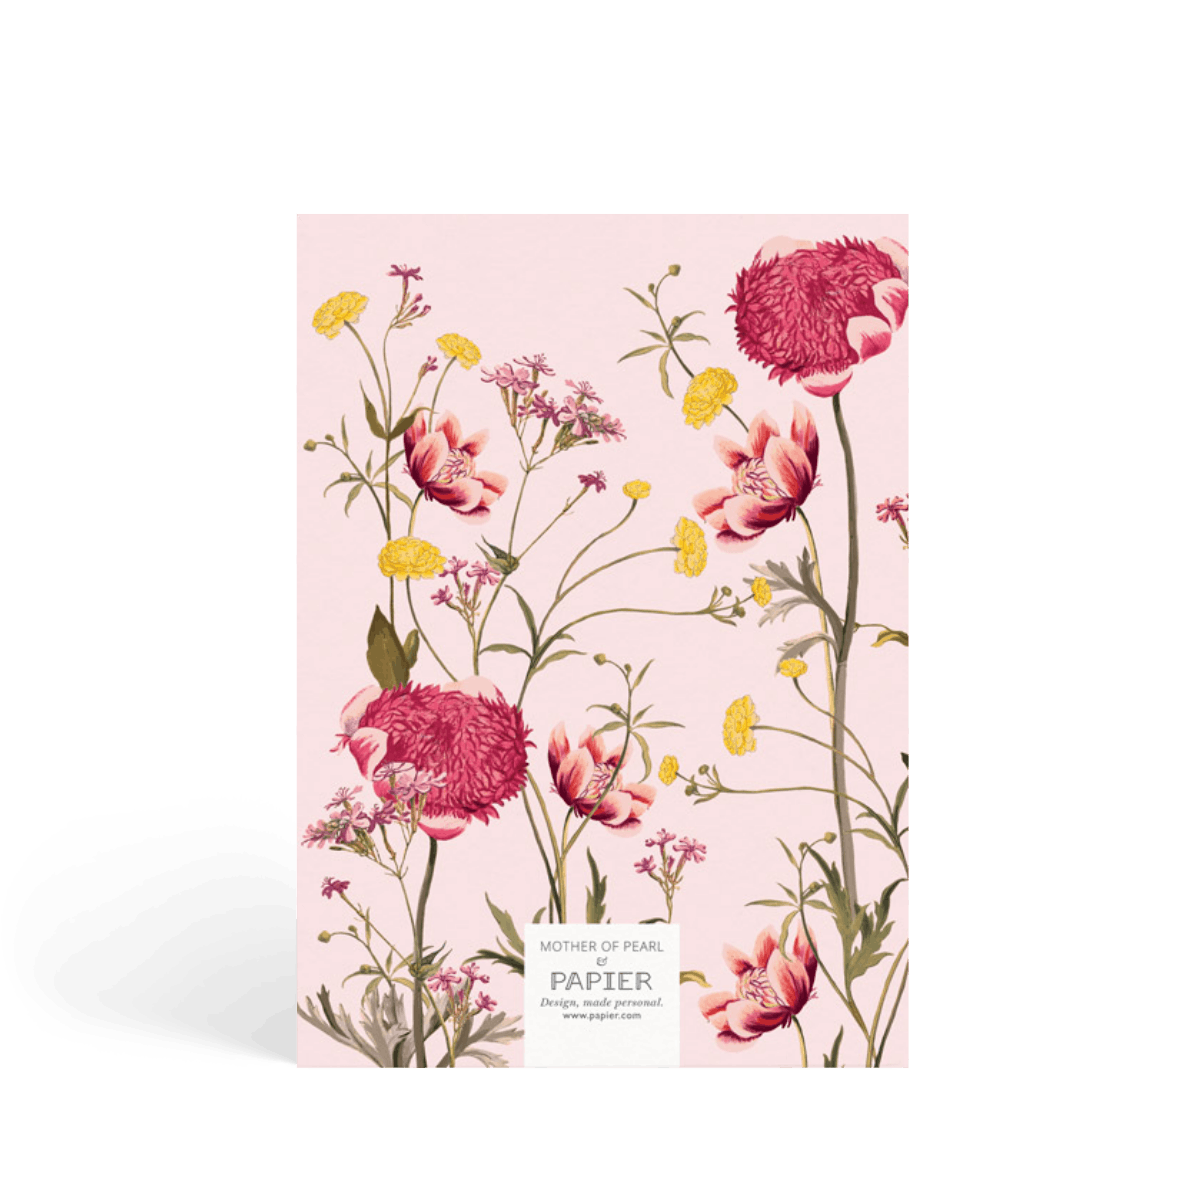 Https%3a%2f%2fwww.papier.com%2fproduct image%2f90426%2f5%2fnavy botanical 22606 back 1570094515.png?ixlib=rb 1.1